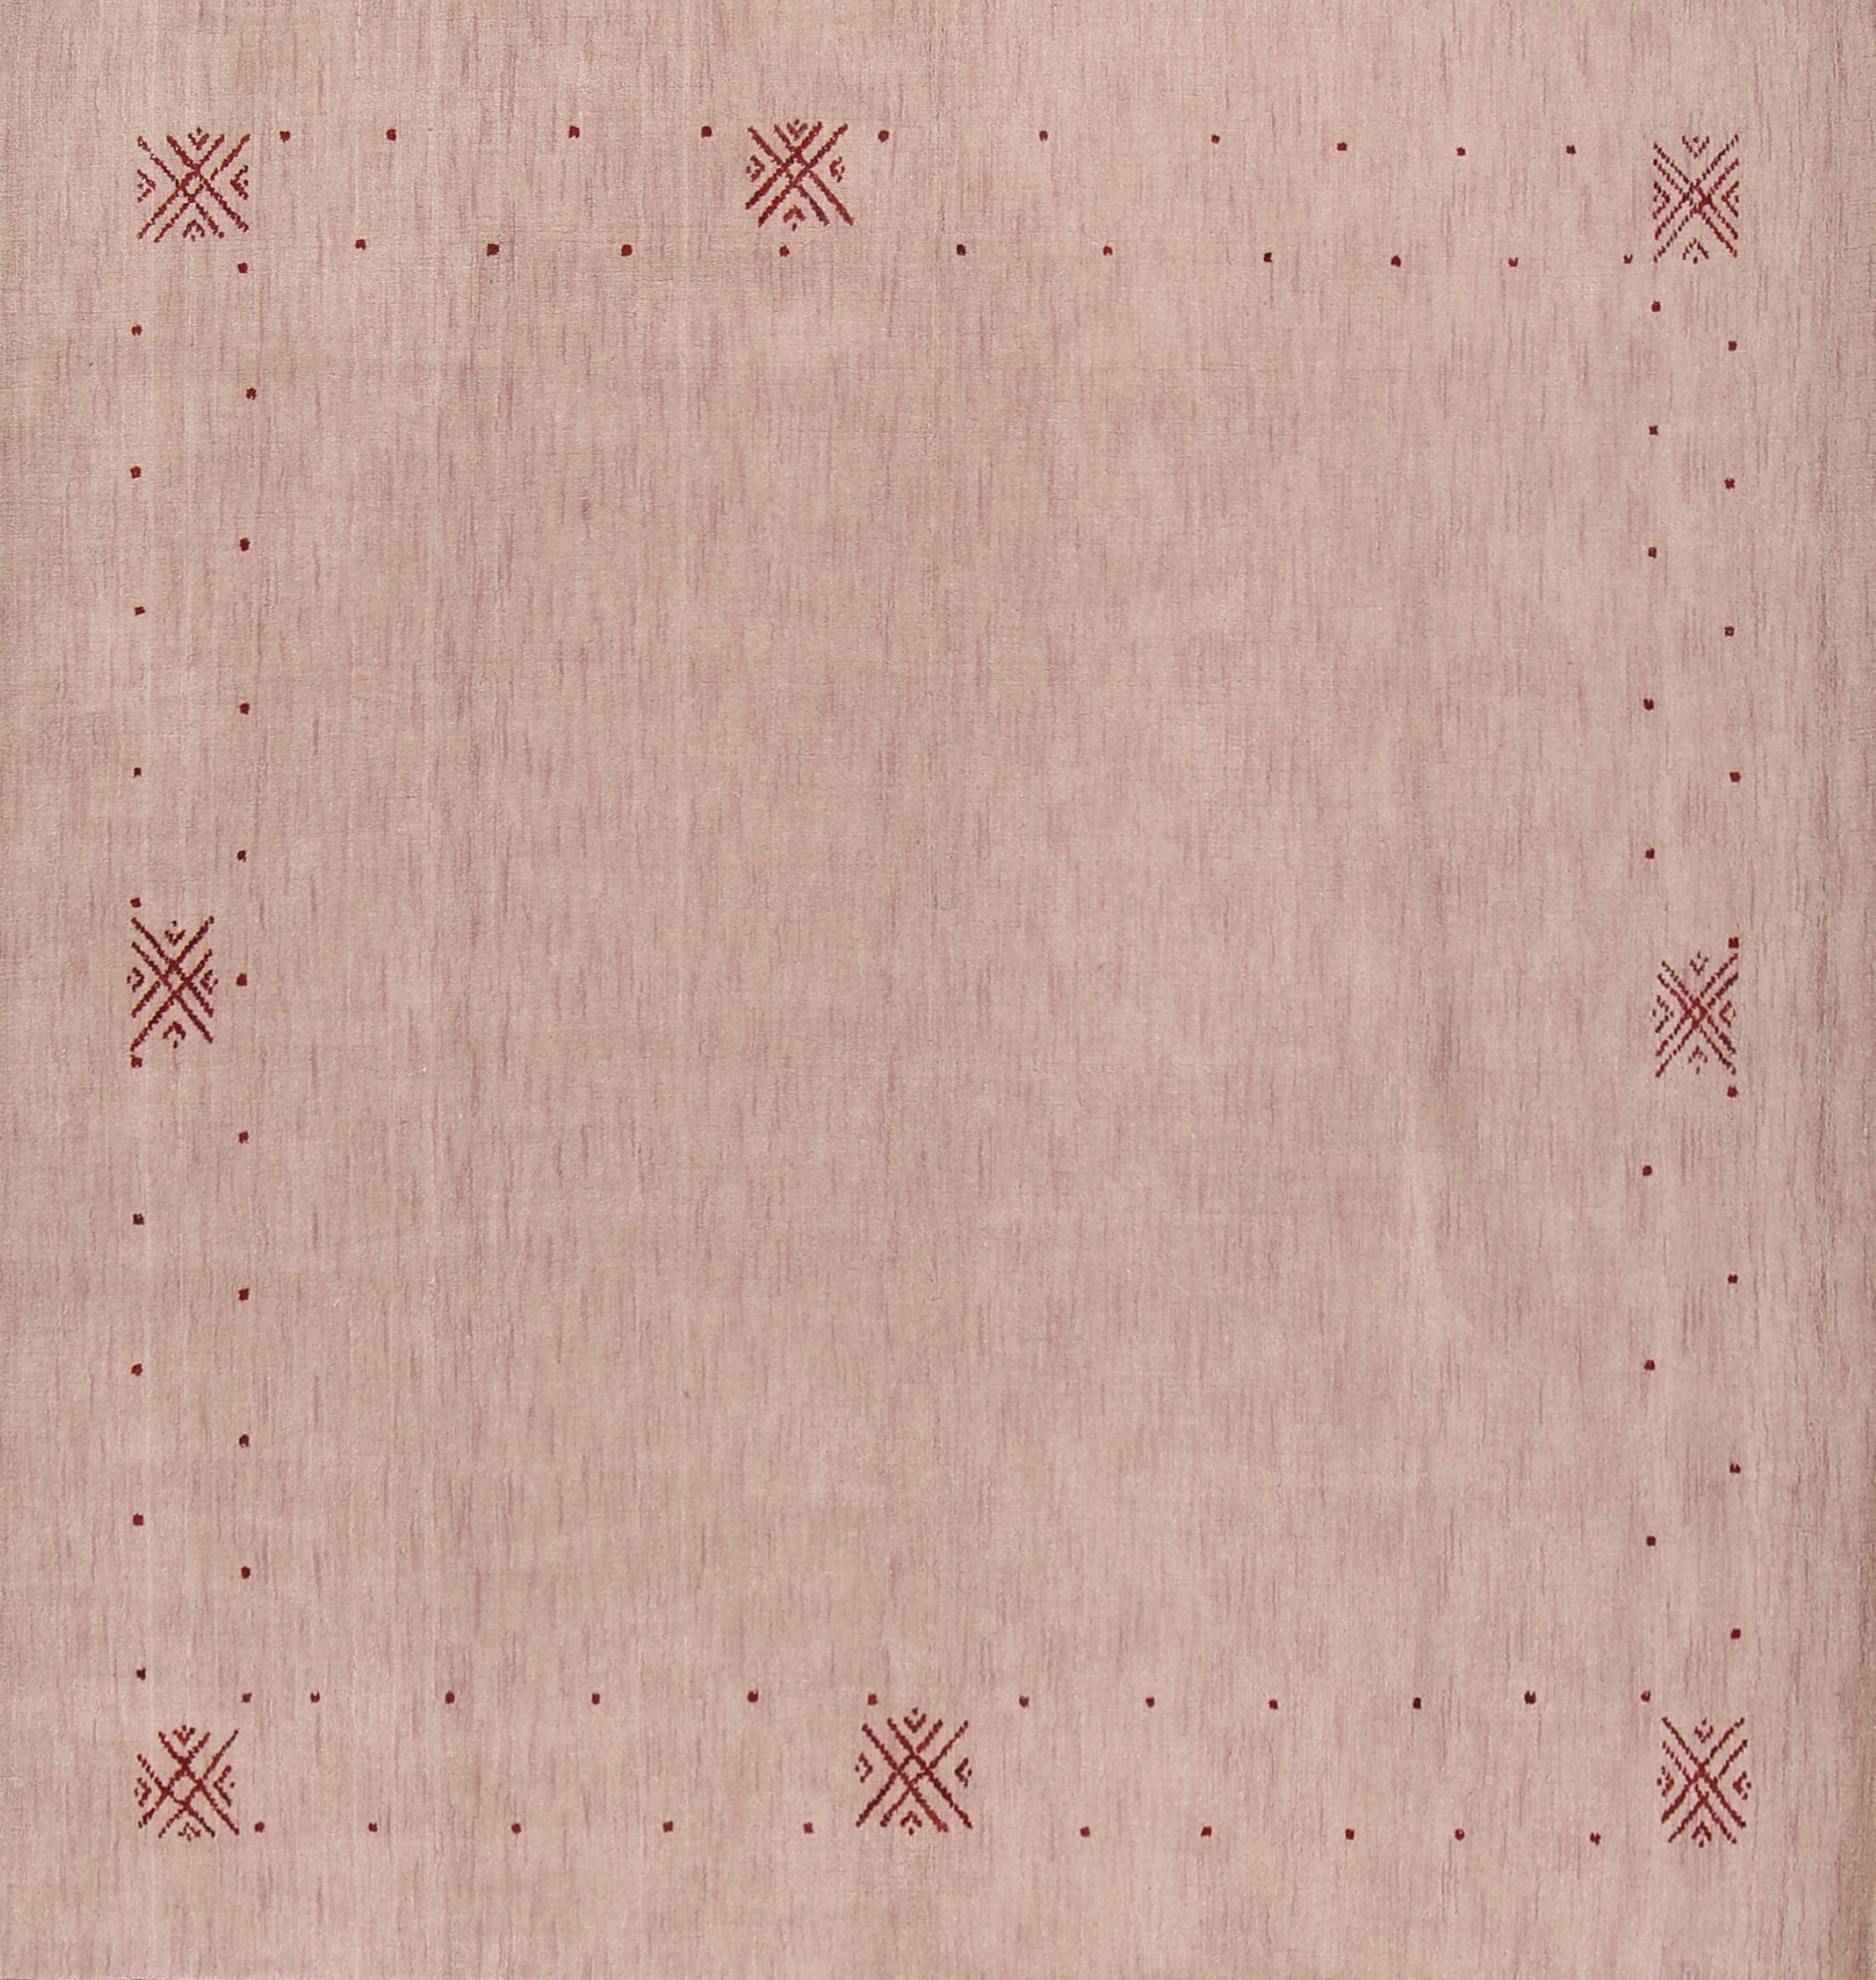 Arrowwood Gabbeh Oriental Hand-Knotted Wool Beige/Ivory Area Rug Rug Size: Square 8'3